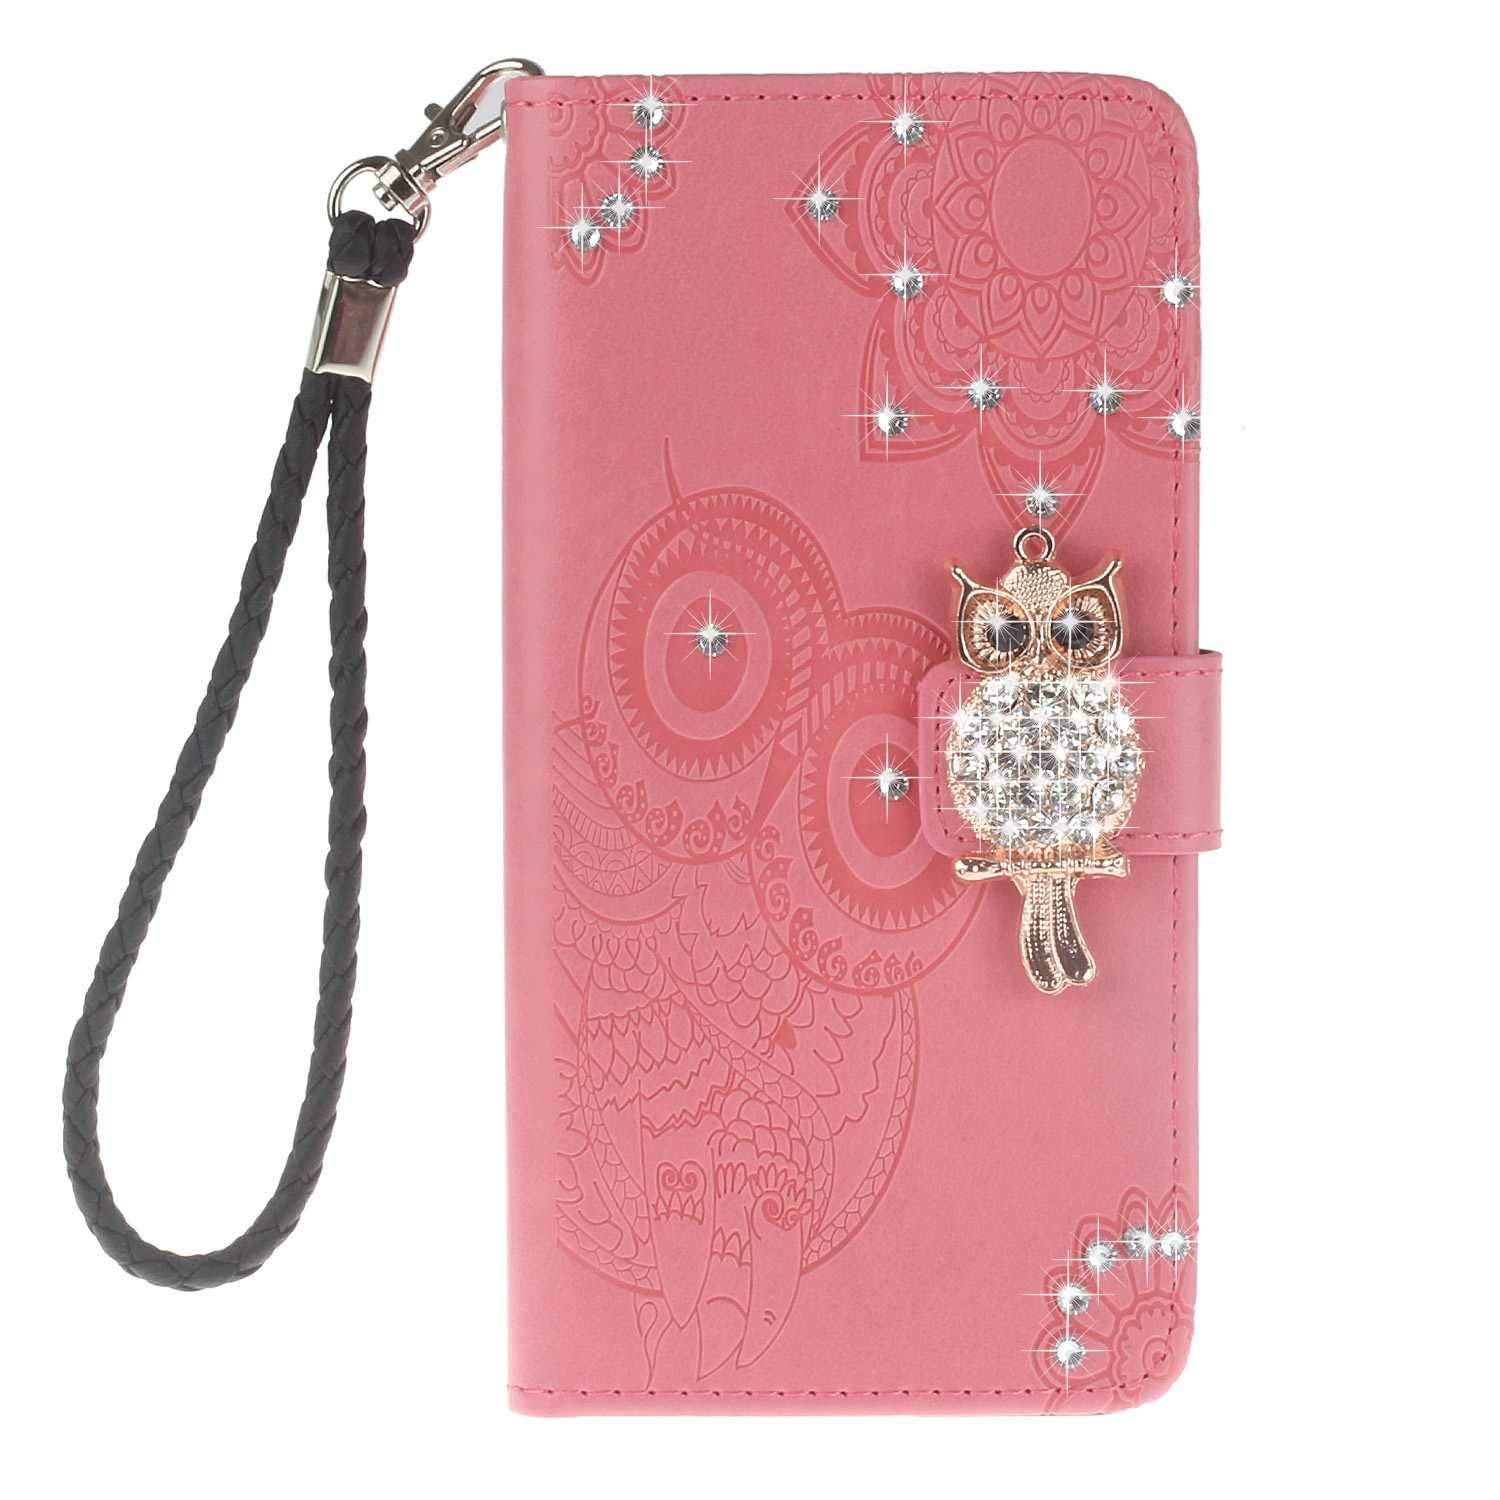 Bear Village Huawei P20 Lite Case, Leather Case with Wrist Strap and Credit Card Slot, Owl Magnetic Closure Shockproof Cover for Huawei P20 Lite, Pink by Bear Village